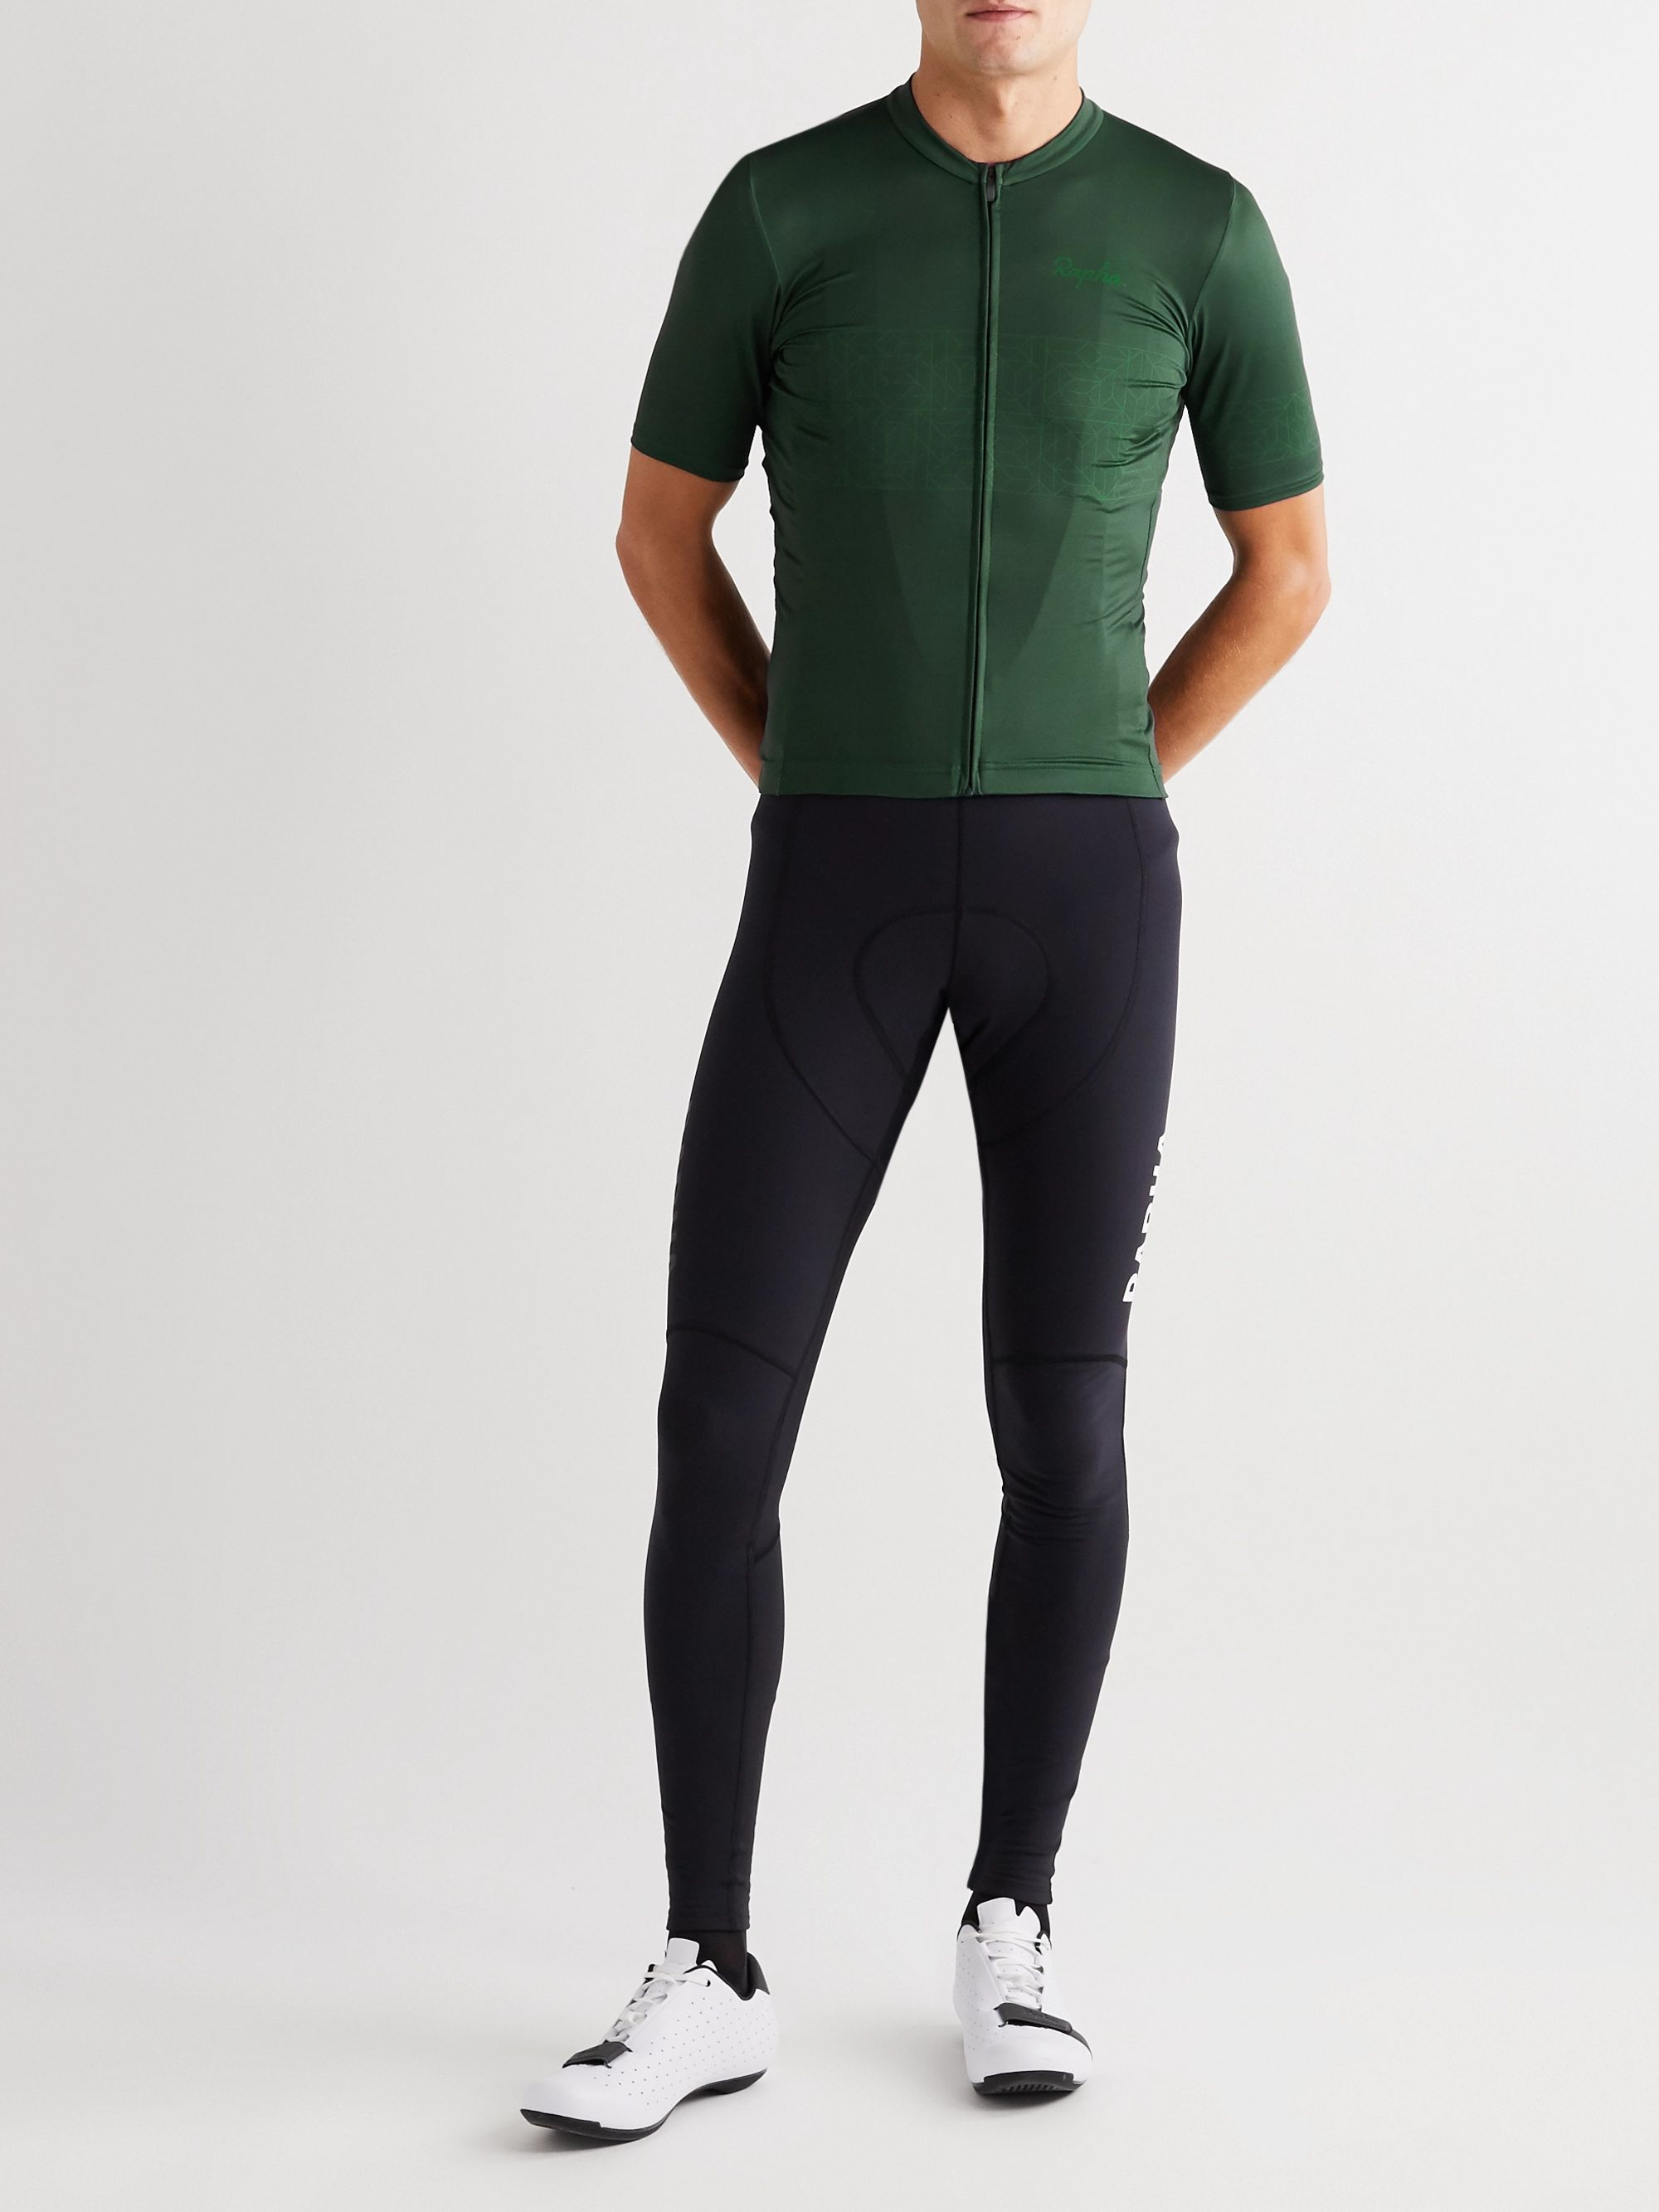 Rapha Pro Team Printed Panelled Cycling Jersey